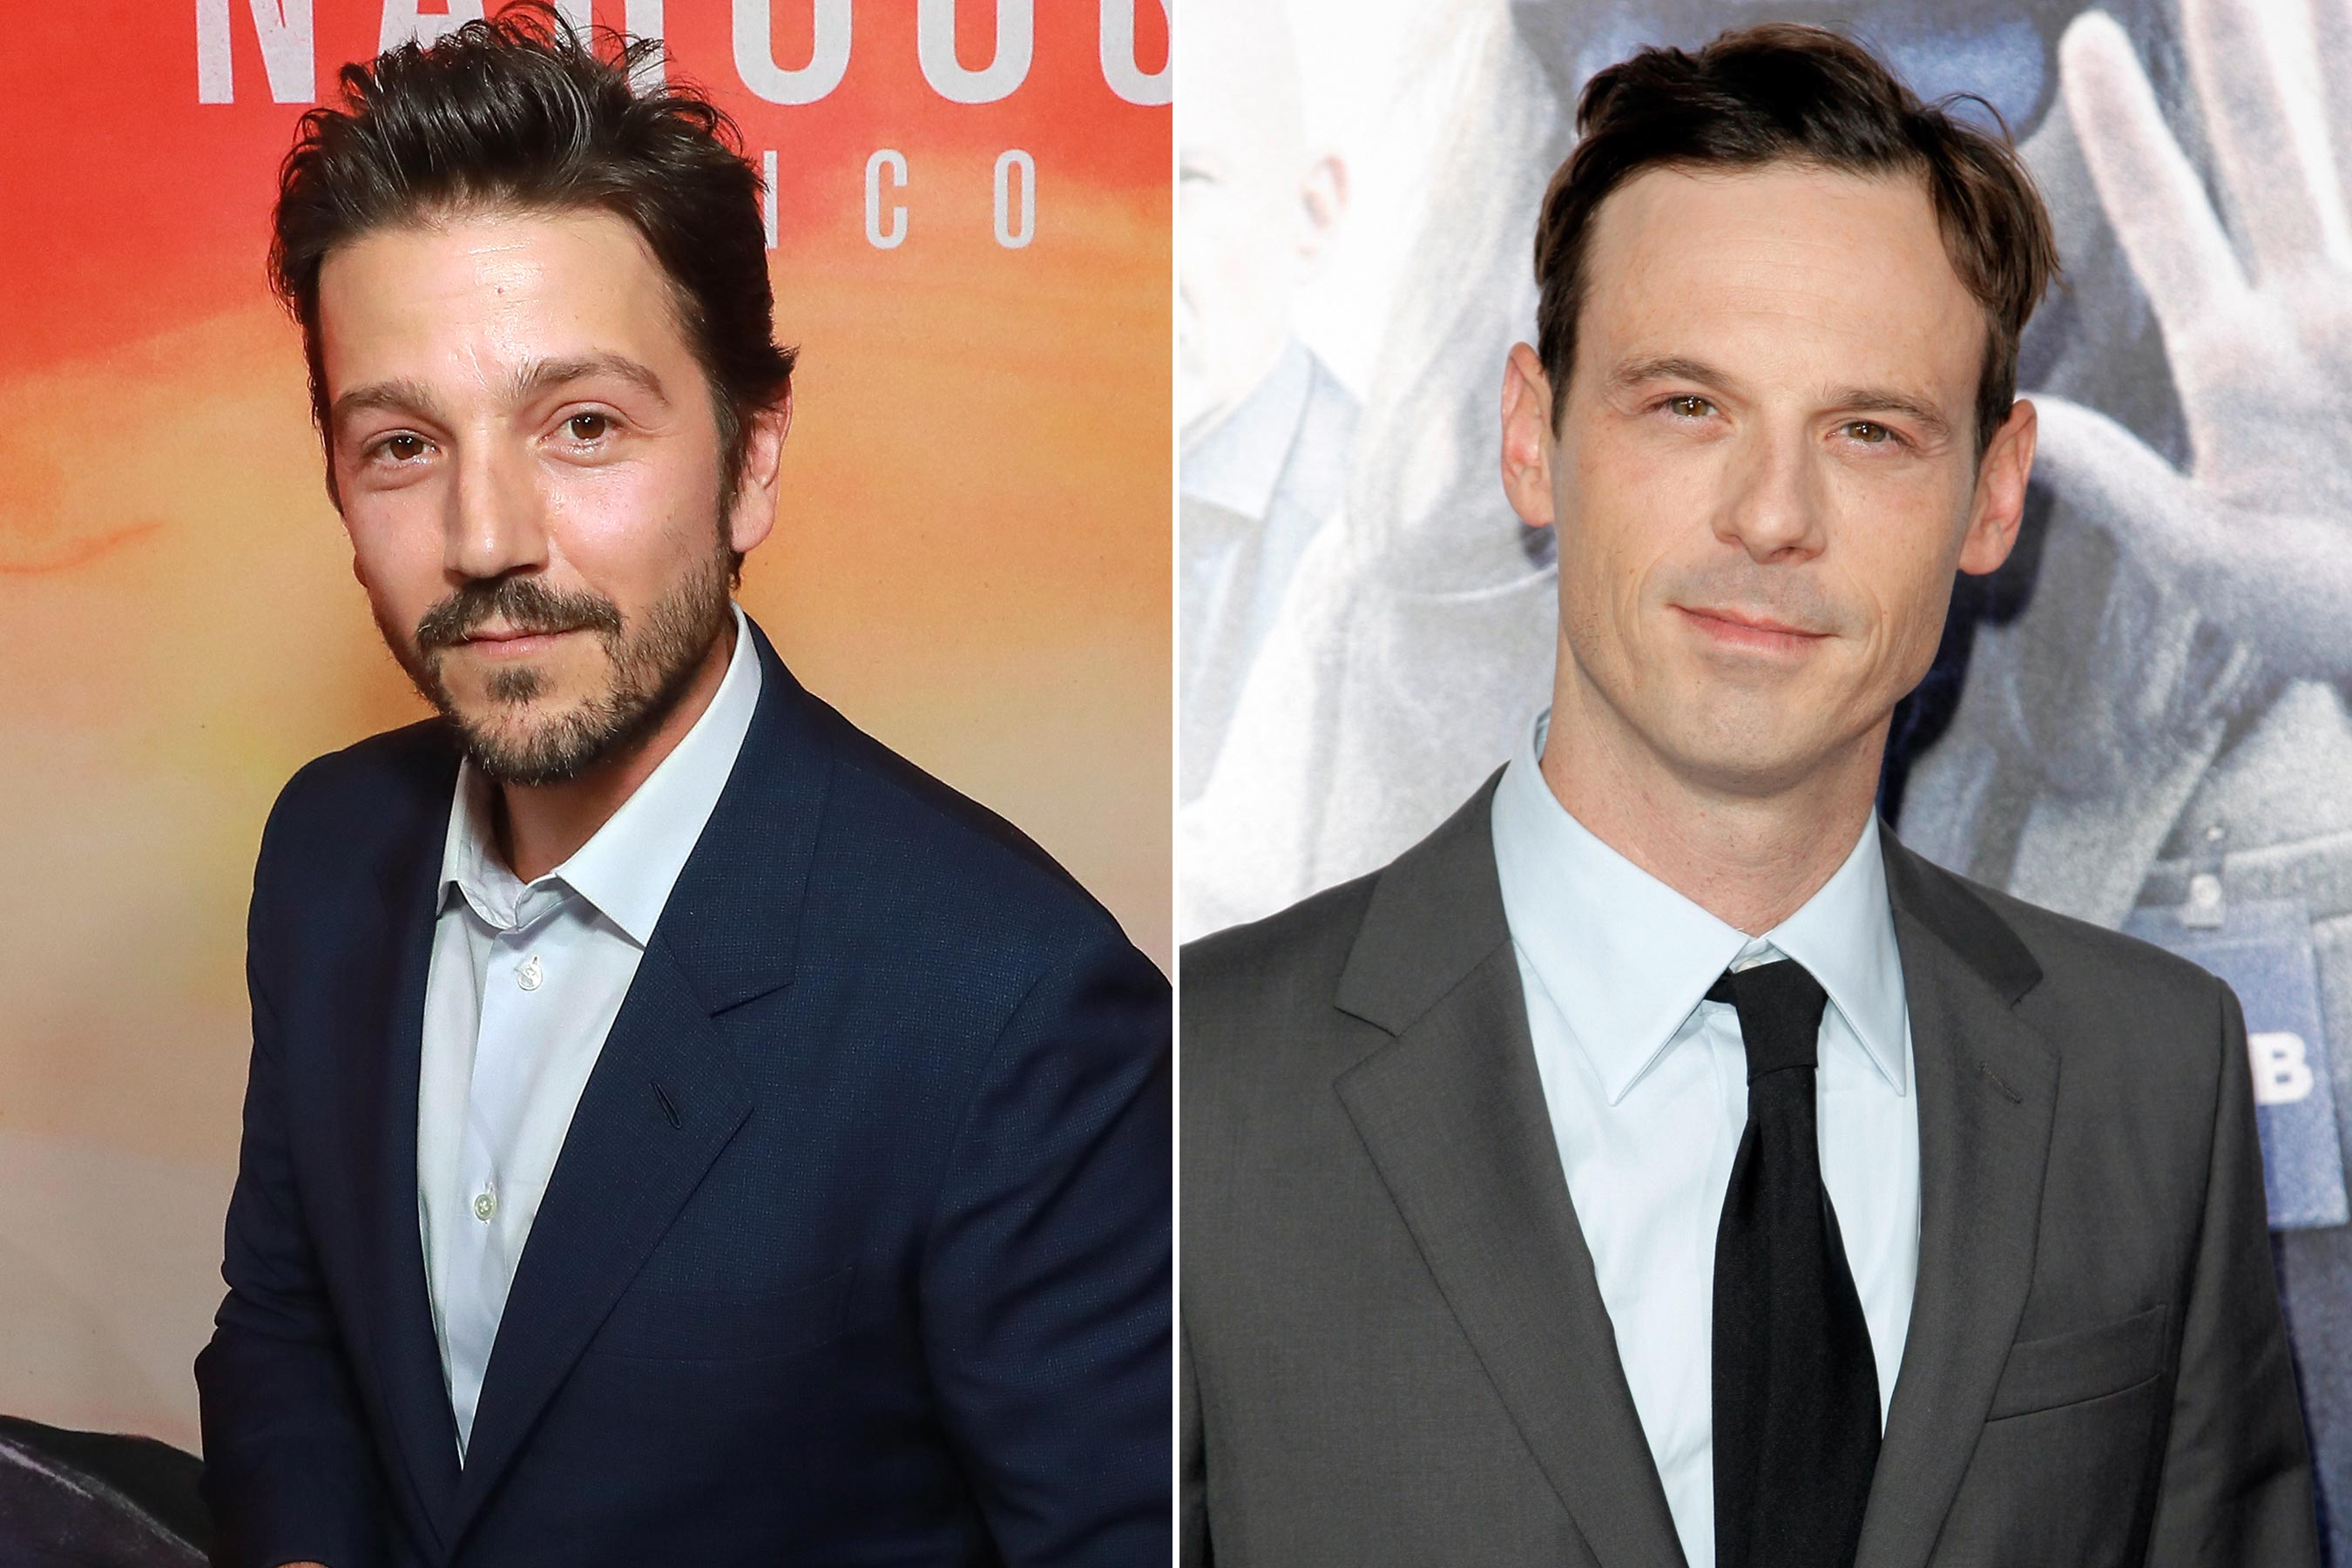 Narcos: Mexico season 2 cast announced by Netflix